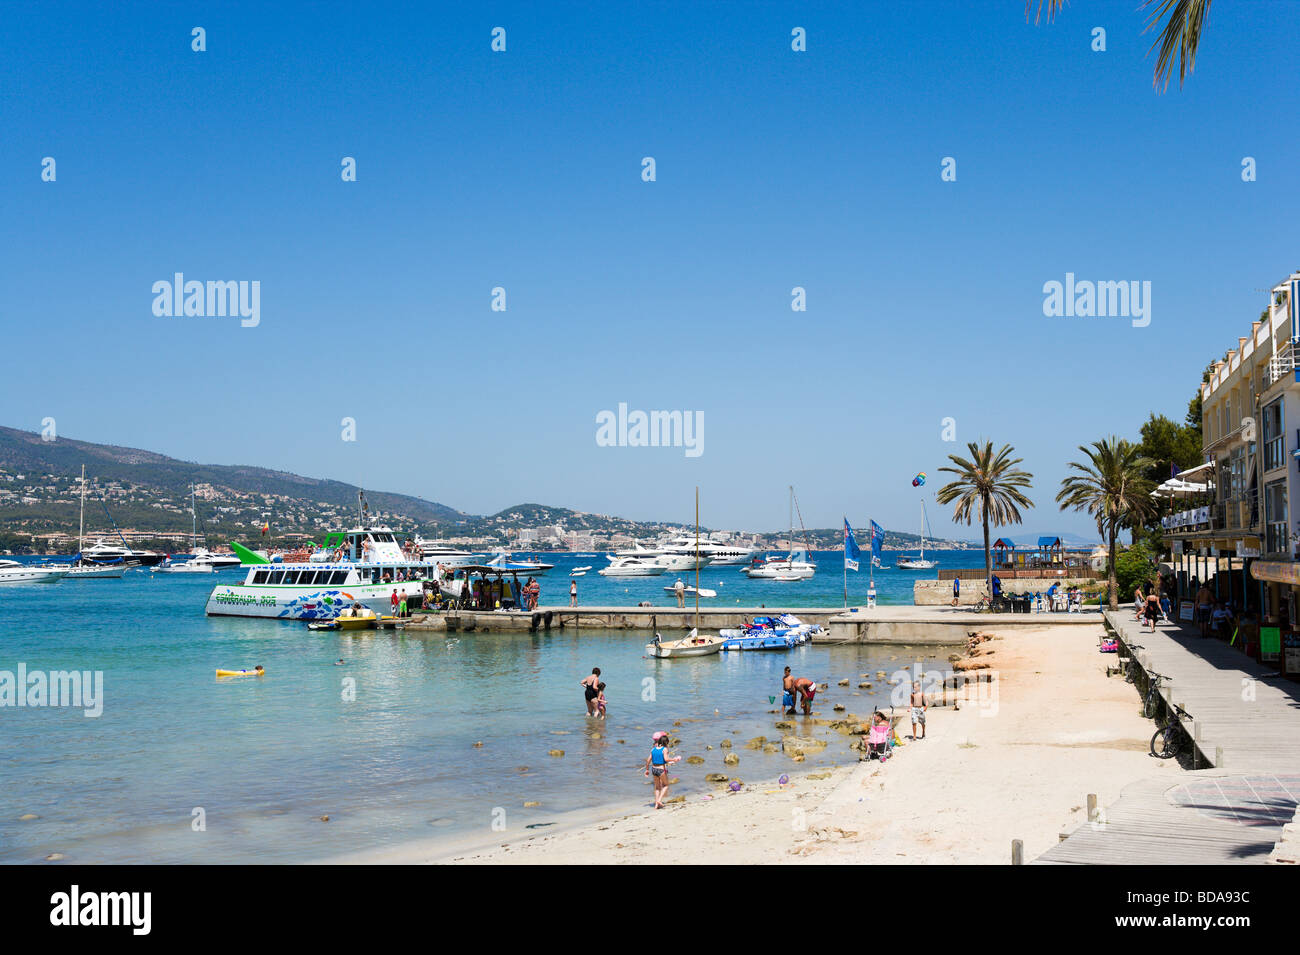 Seafront and excursion boat at Palmanova, Bay of Palma, South Coast, Mallorca, Balearic Islands, Spain Stock Photo